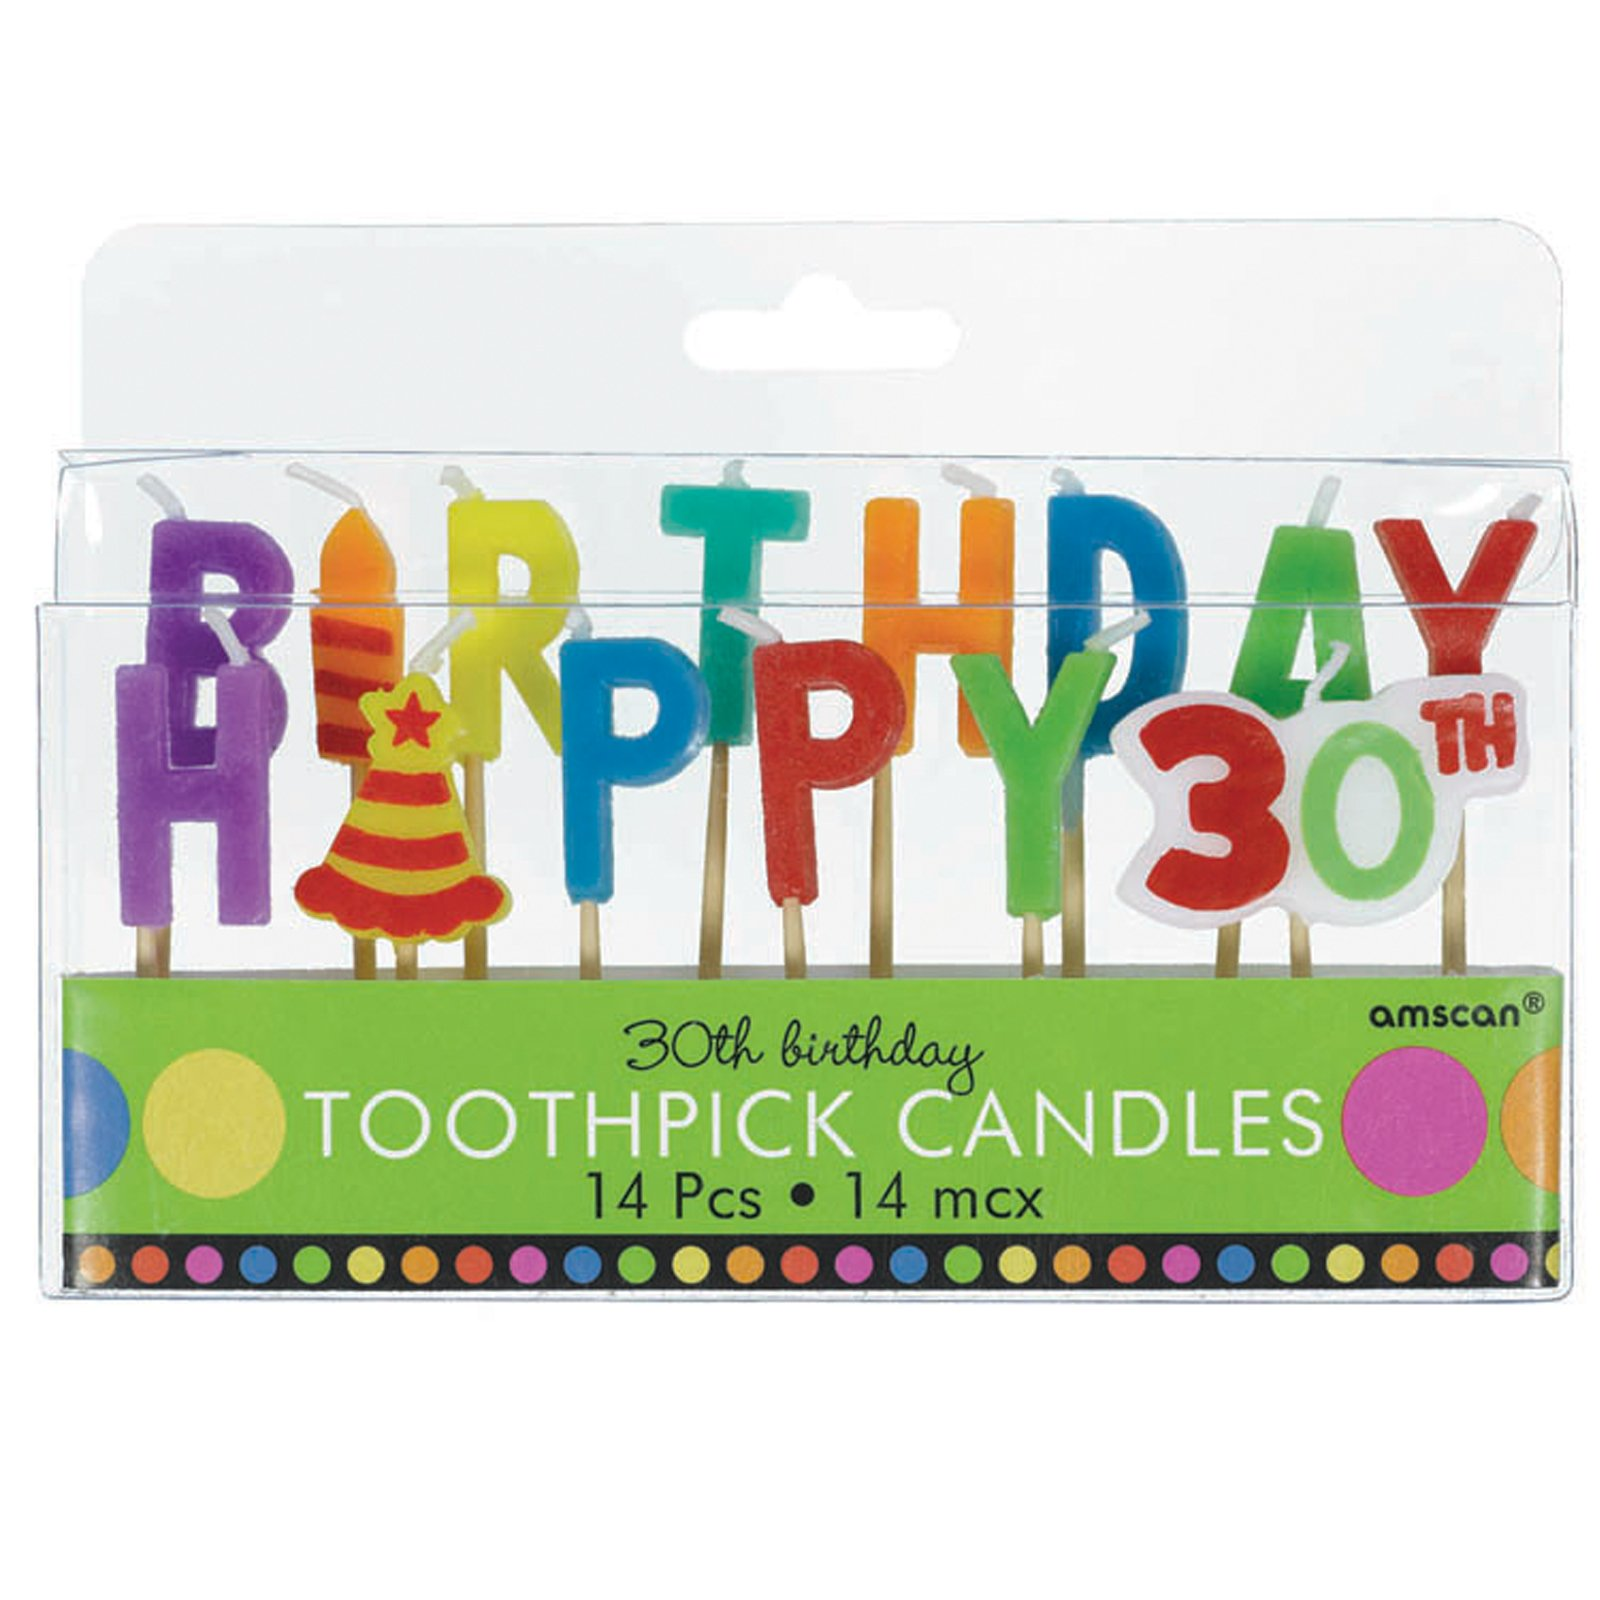 30th Birthday Toothpick Candles (14 count)